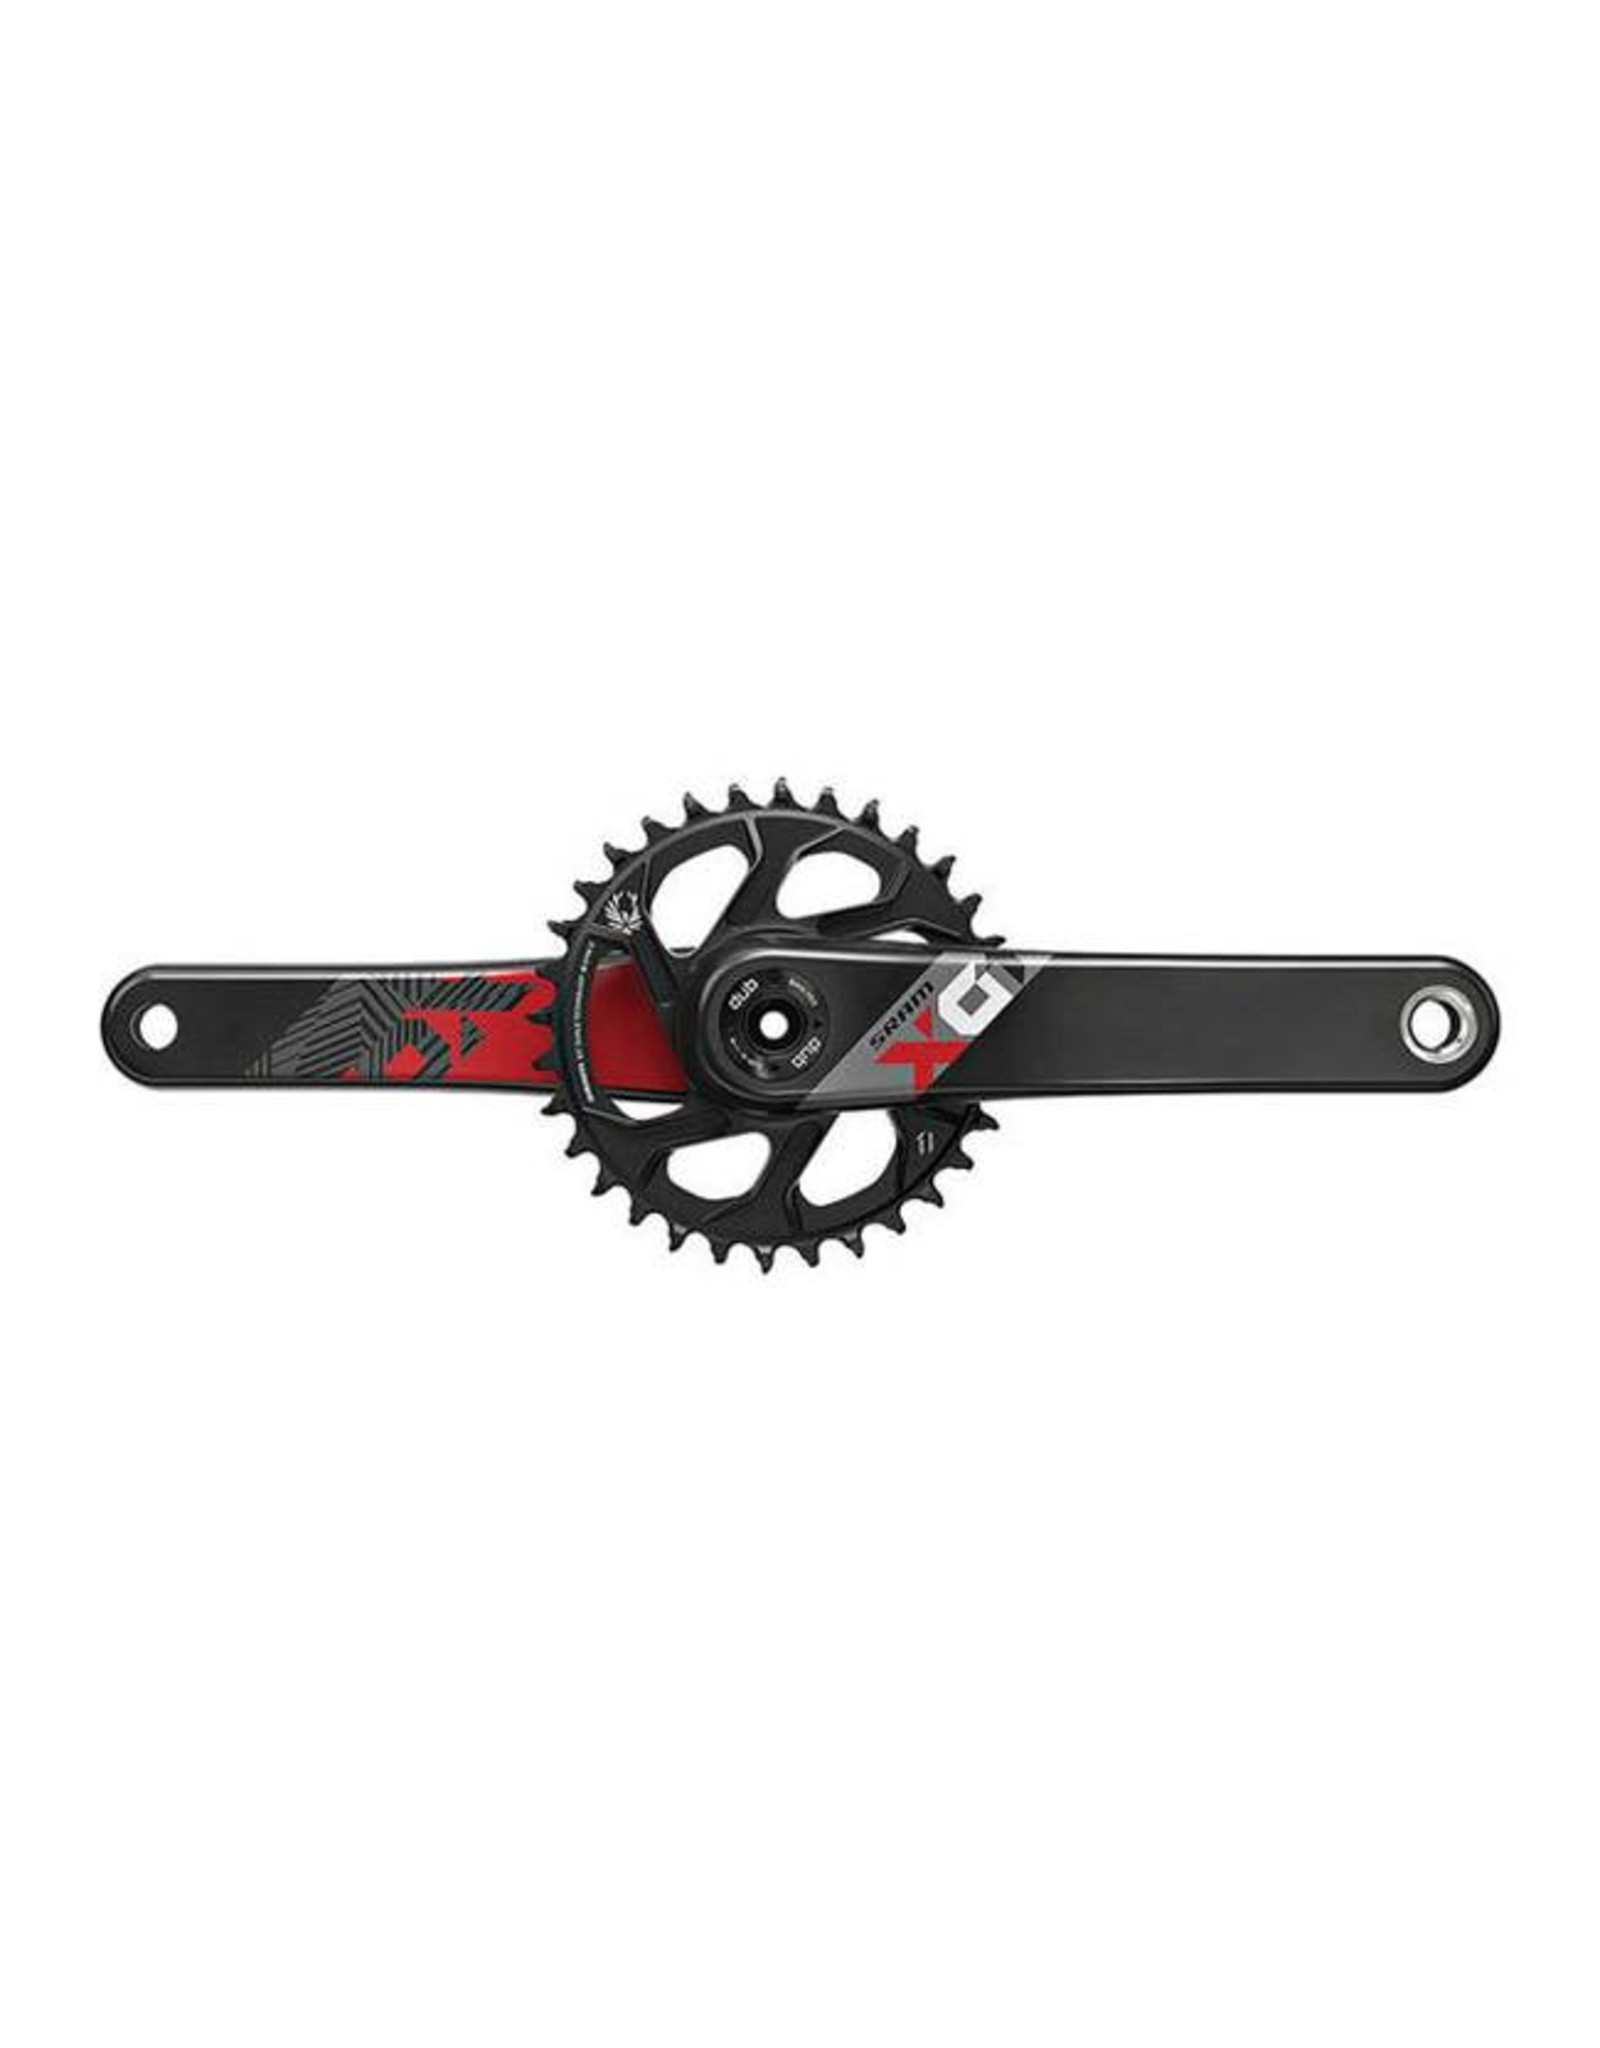 SRAM SRAM X01 Eagle Carbon DUB Crankset 175mm Direct Mount 32t X-Sync 2 Chainring Red, Bottom Bracket Not Included